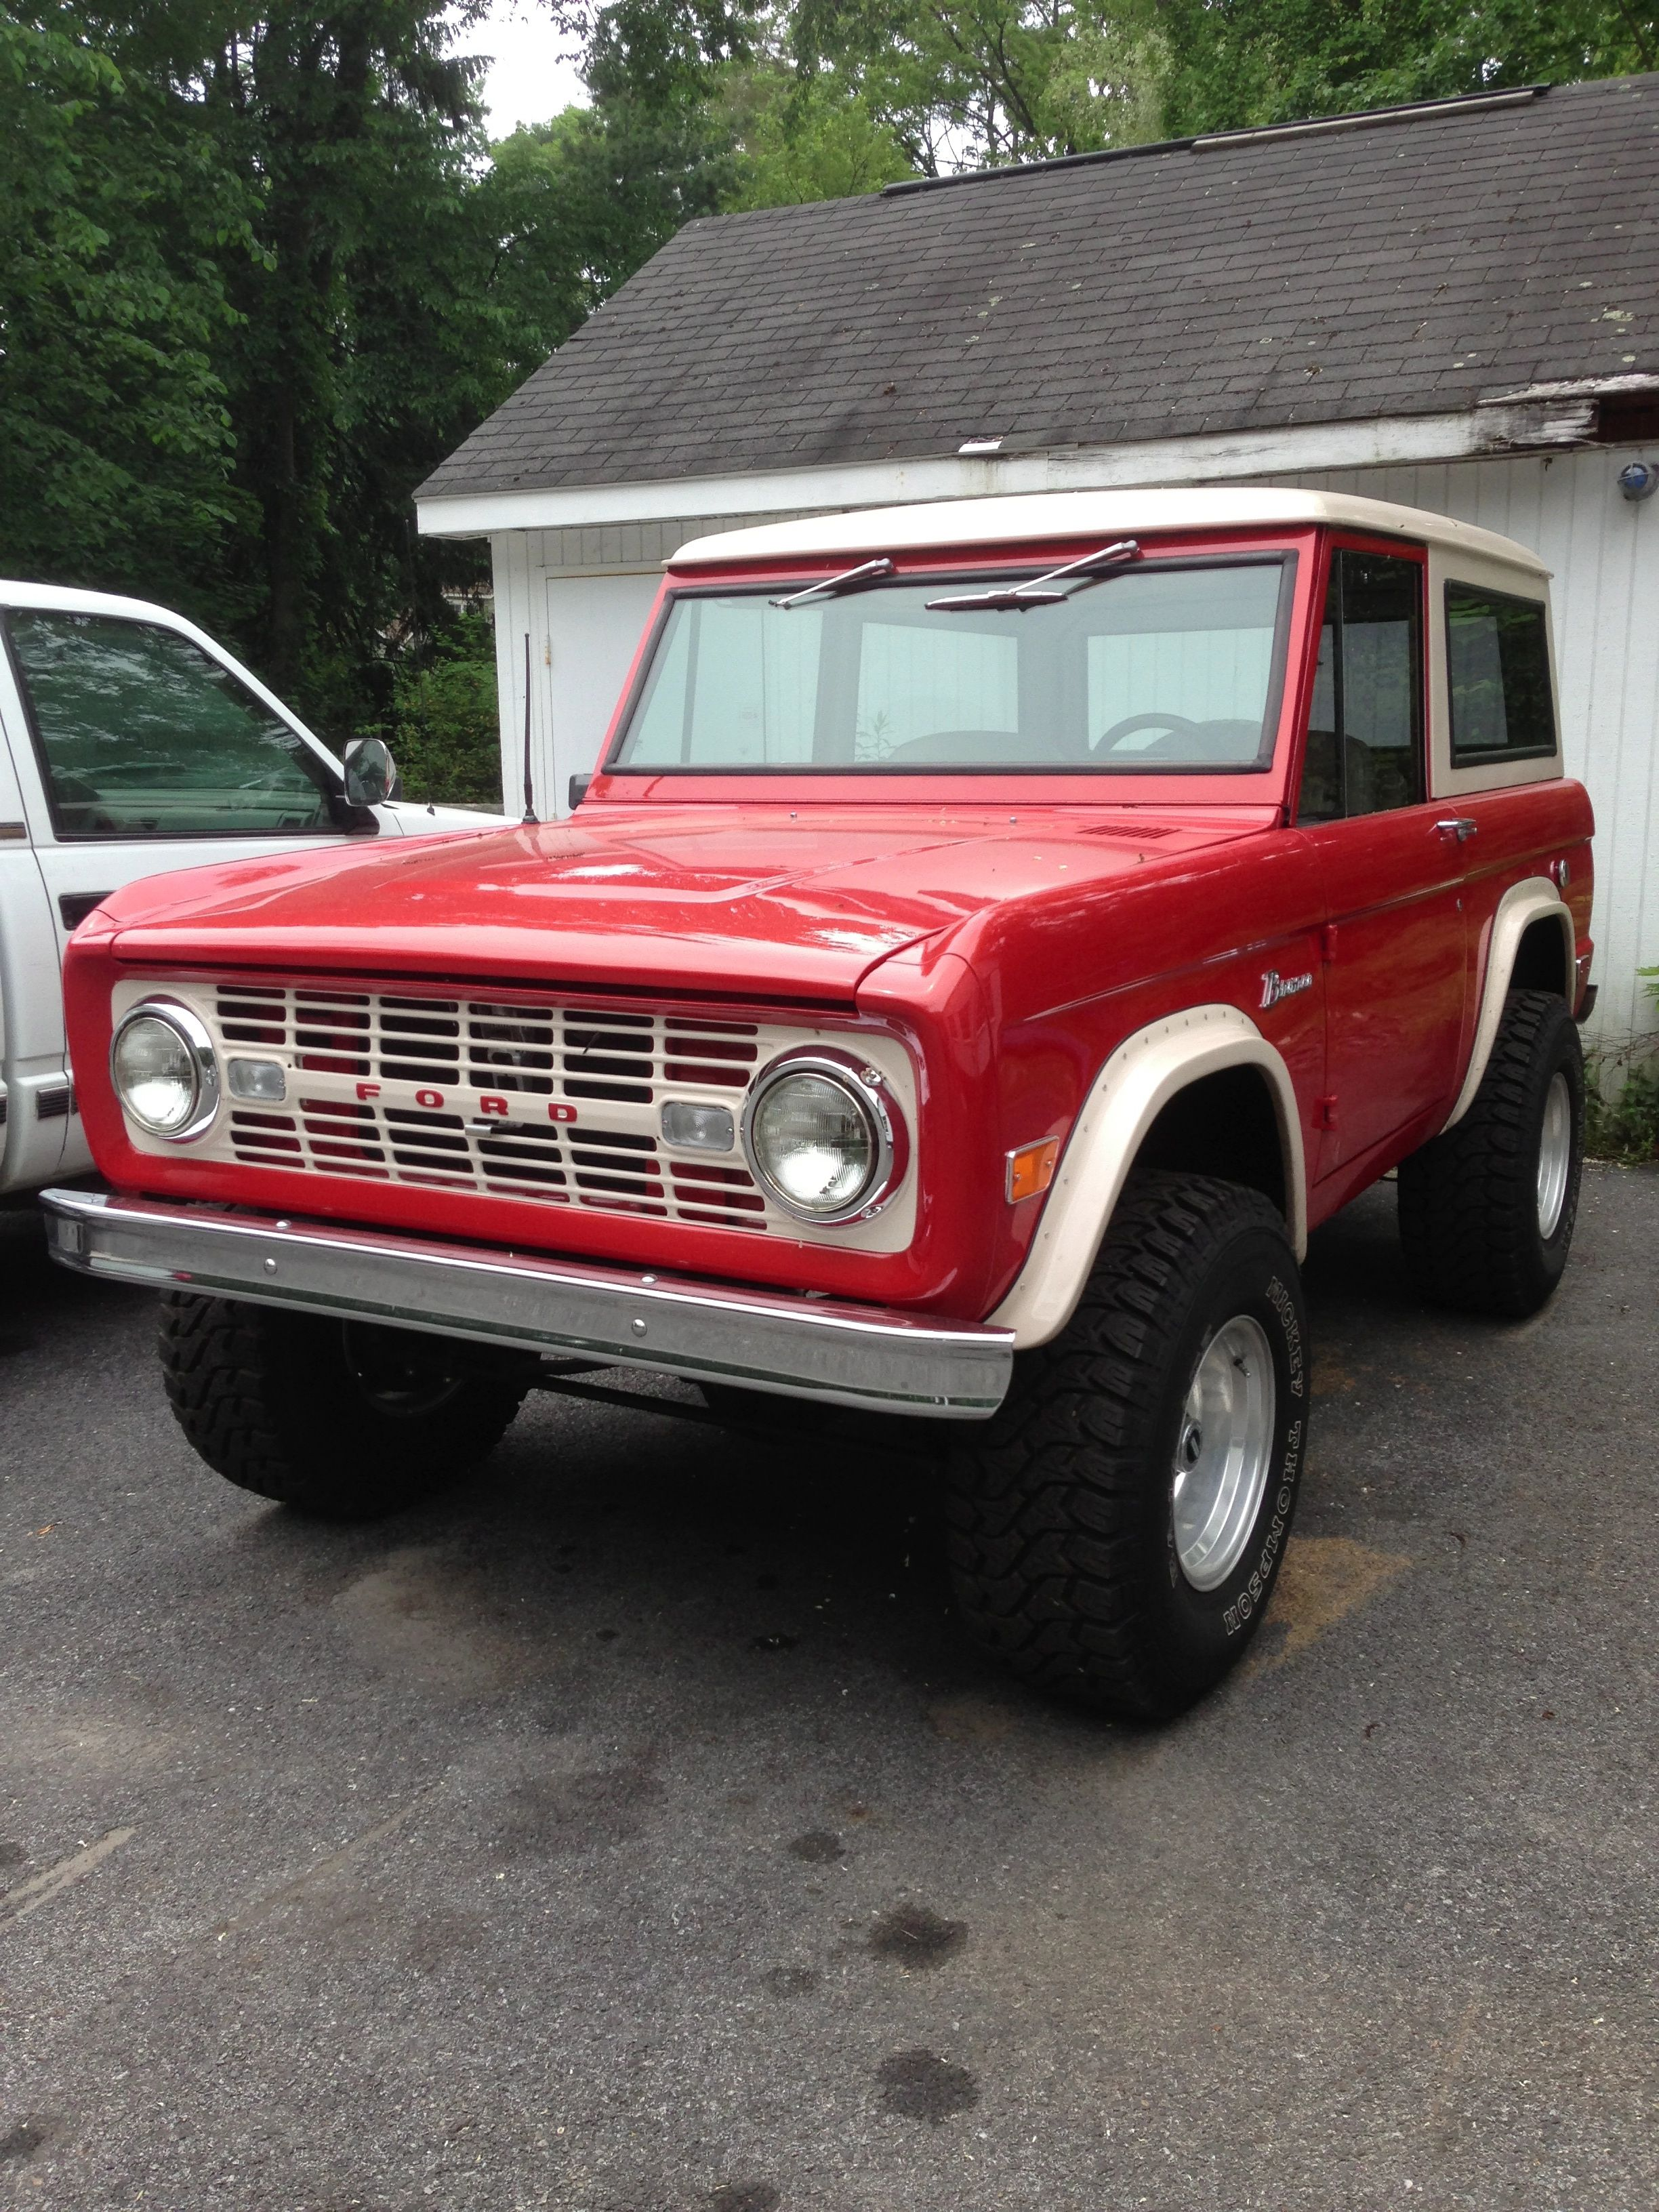 Vintage Bronco Pound Ridge Ny Old Ford Bronco Bronco Ford